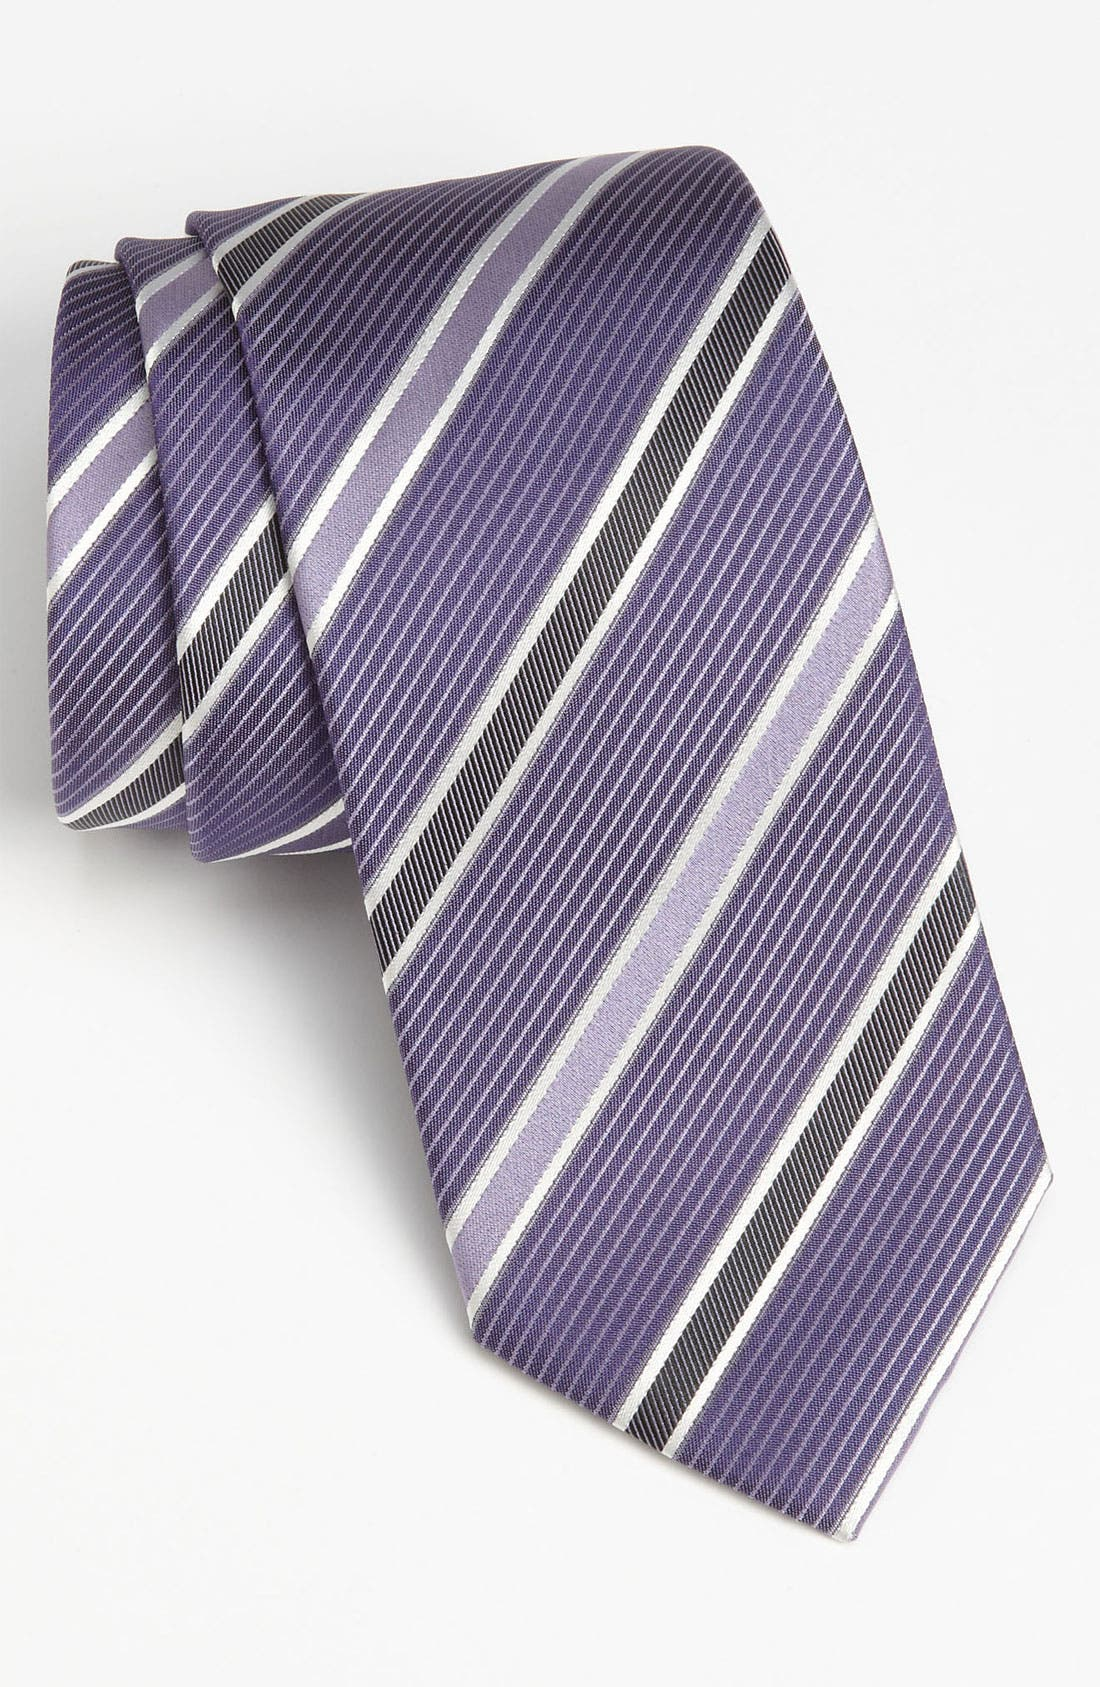 HUGO BOSS Woven Silk Tie,                             Main thumbnail 3, color,